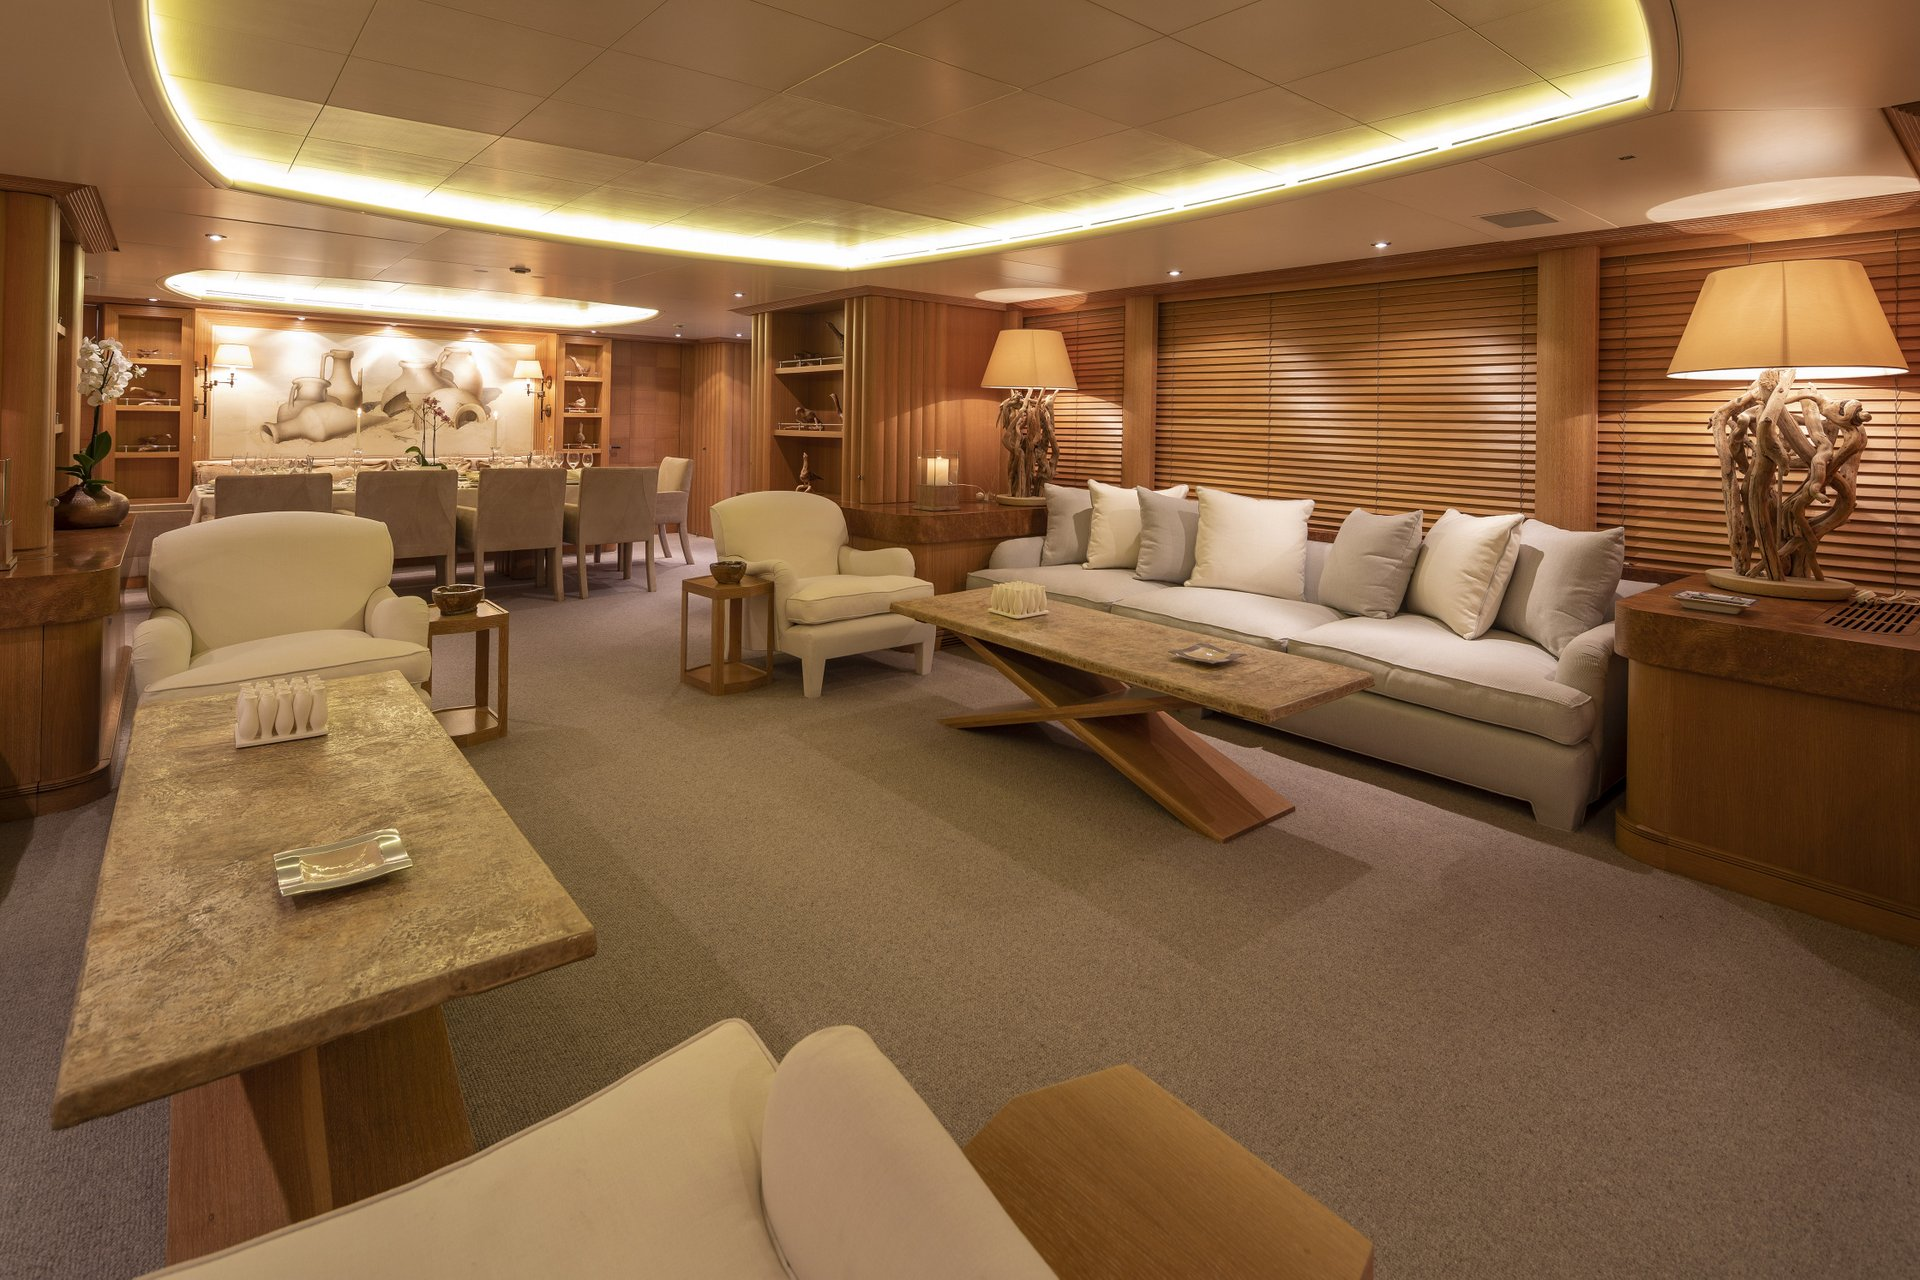 m/y alexandra yacht for charter living room